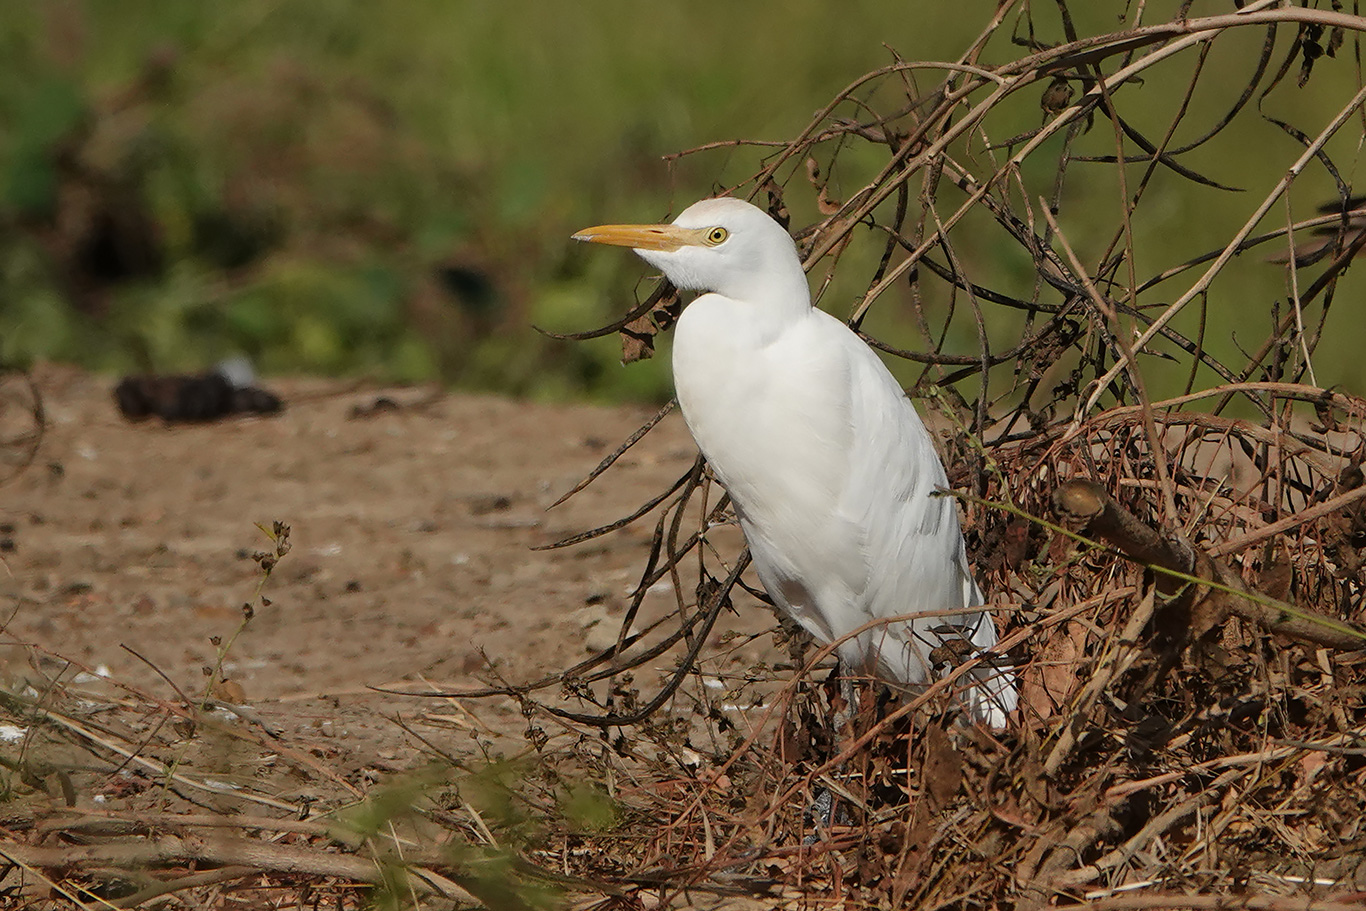 Cattle Egret, Jakhaly, The Gambia.